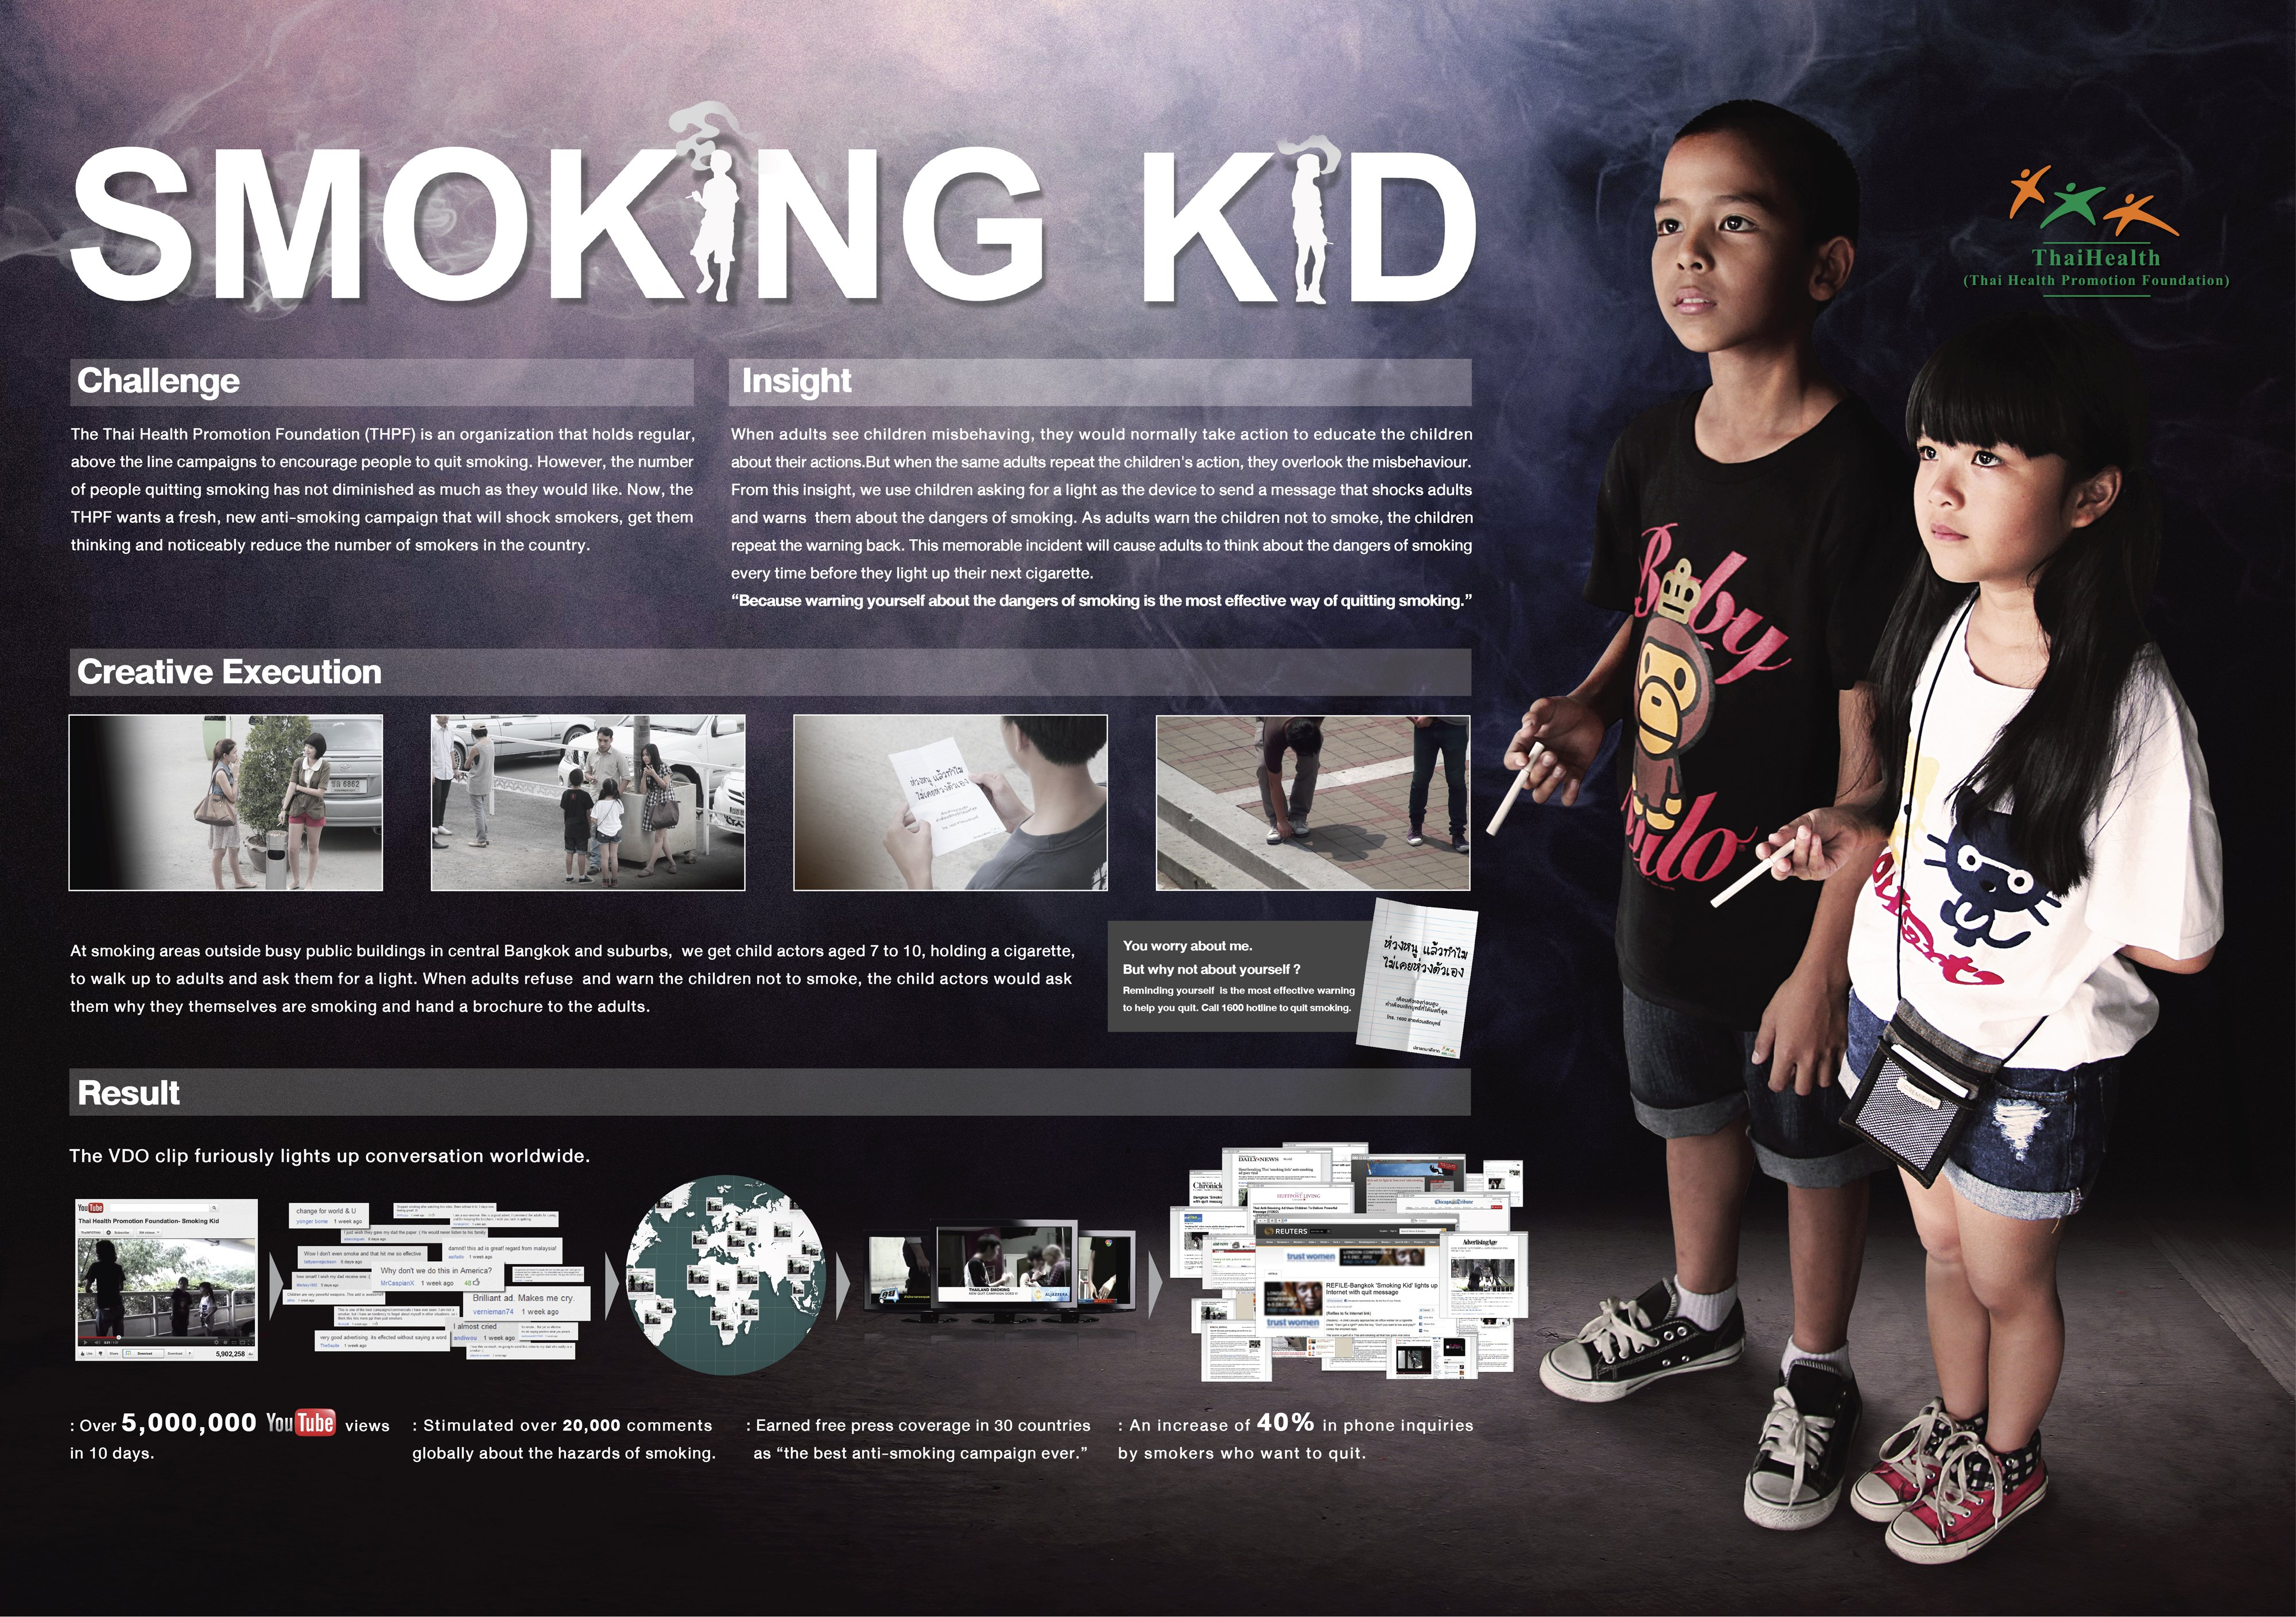 Smoking Kid Campaign Article Image